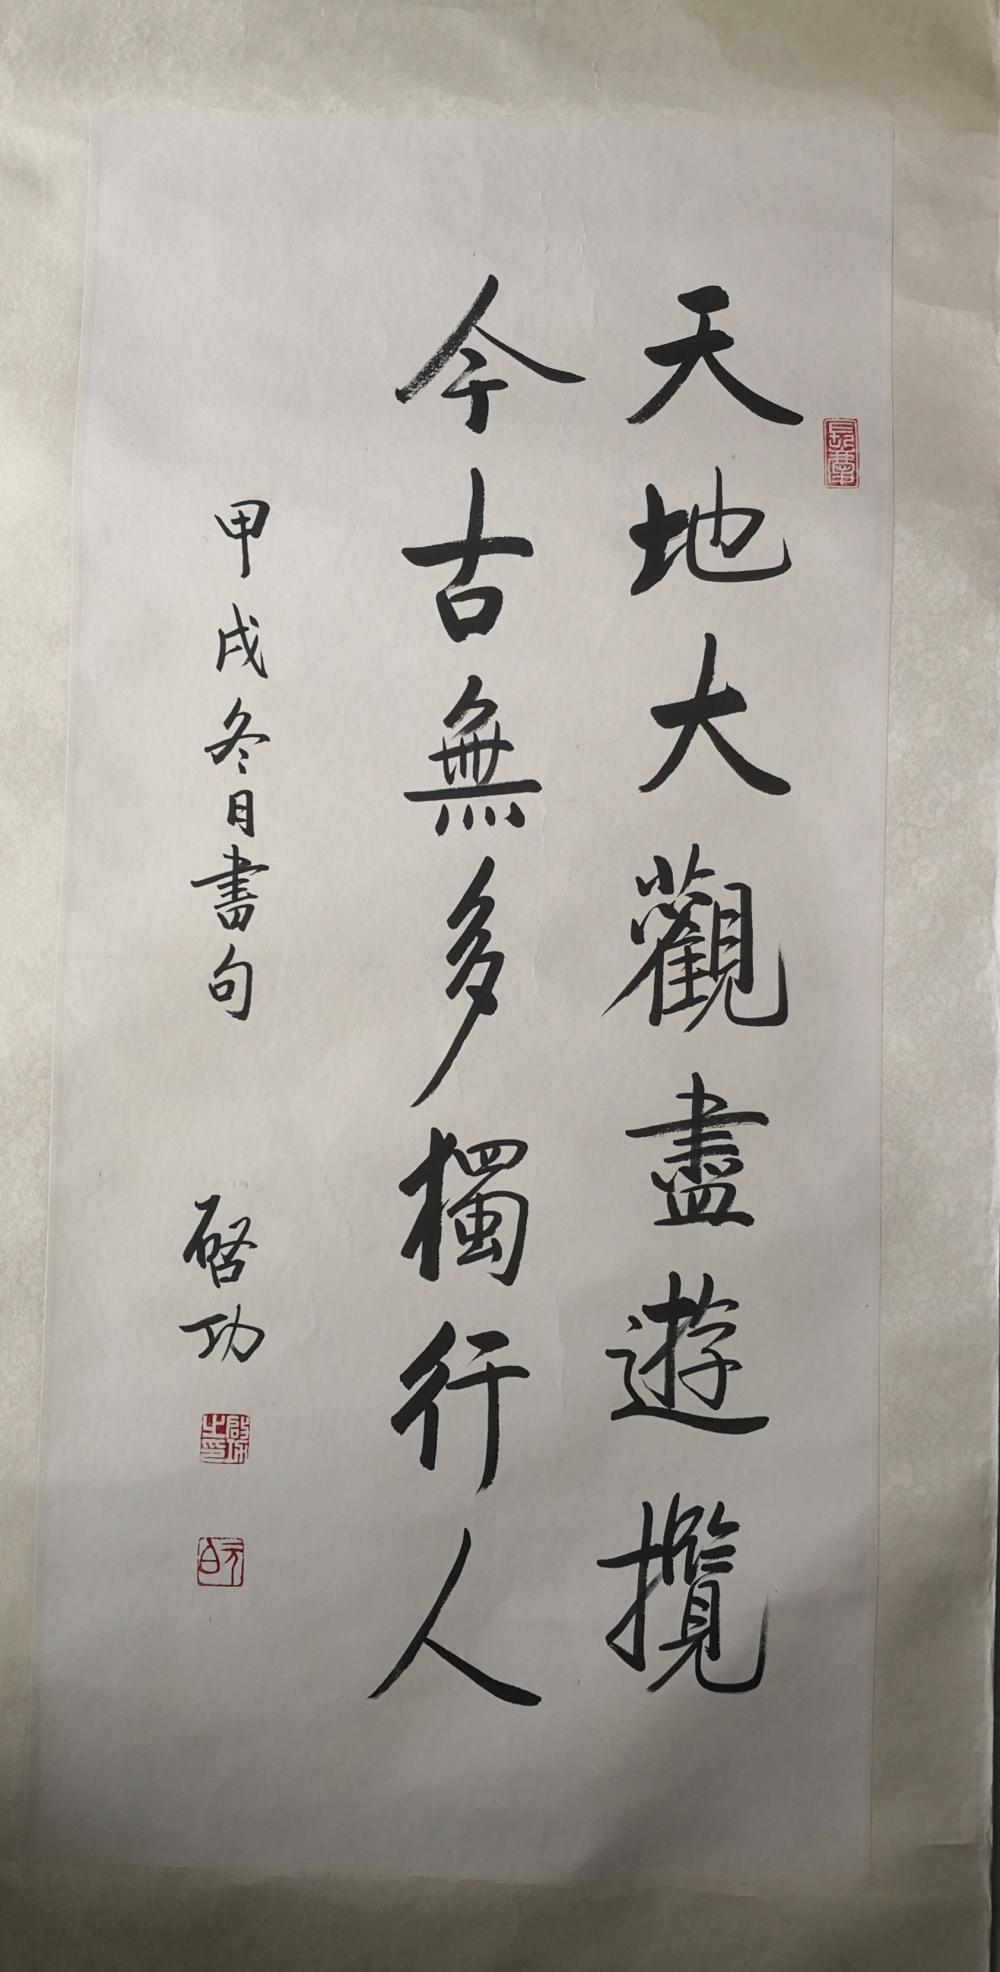 A CHINESE CALLIGRAPHY BY QI GONG